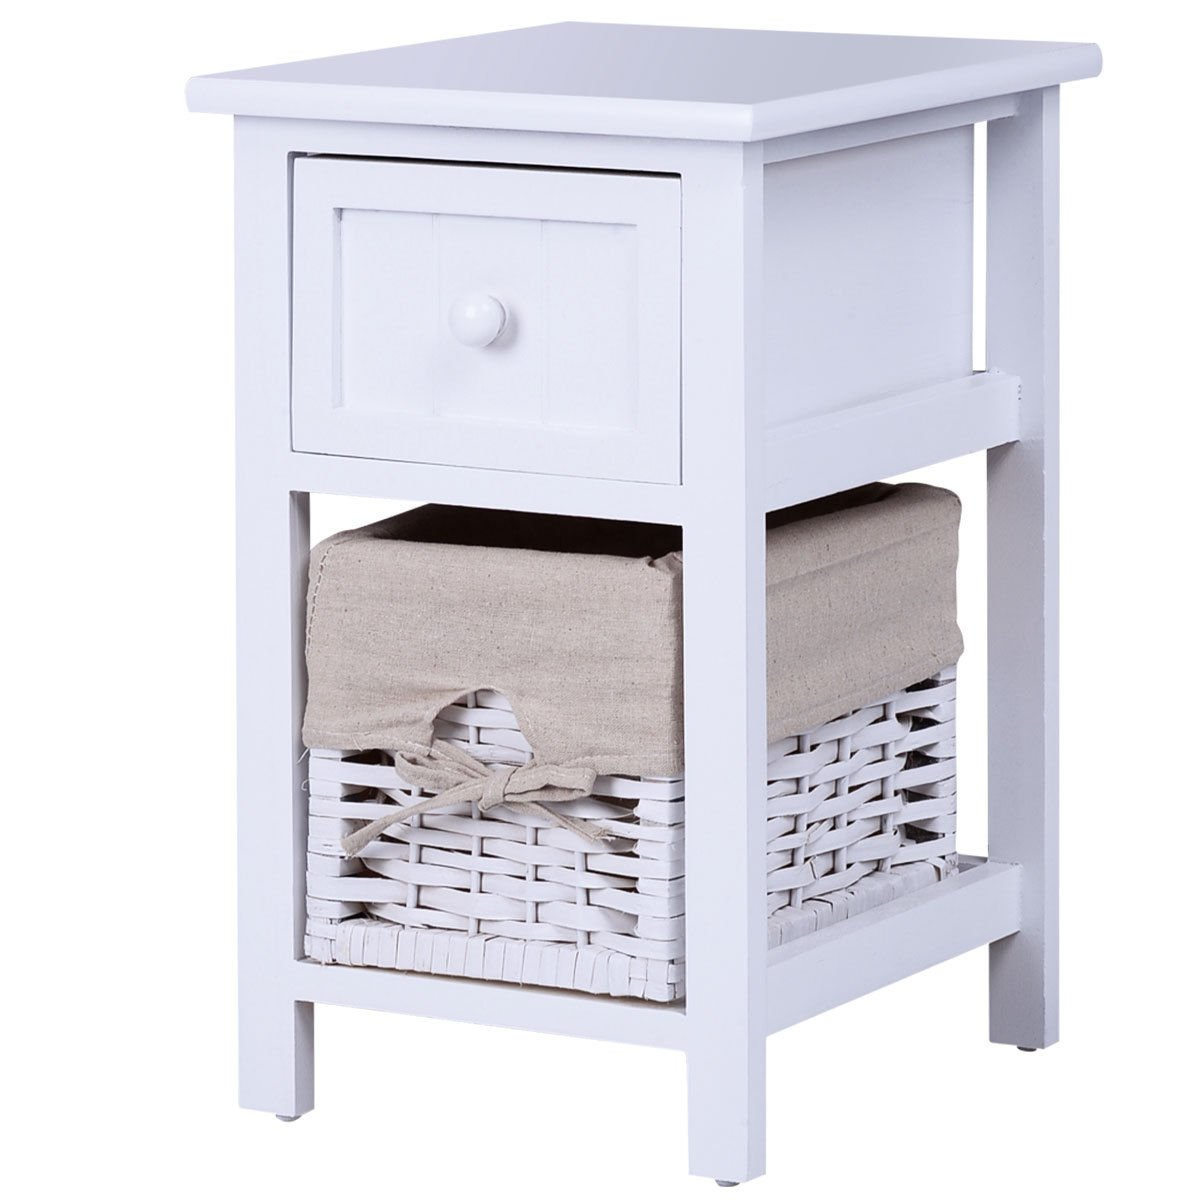 2 Tier Nightstand 1 Drawer Bedside End Table Organizer Wood W/Basket White with Ebook